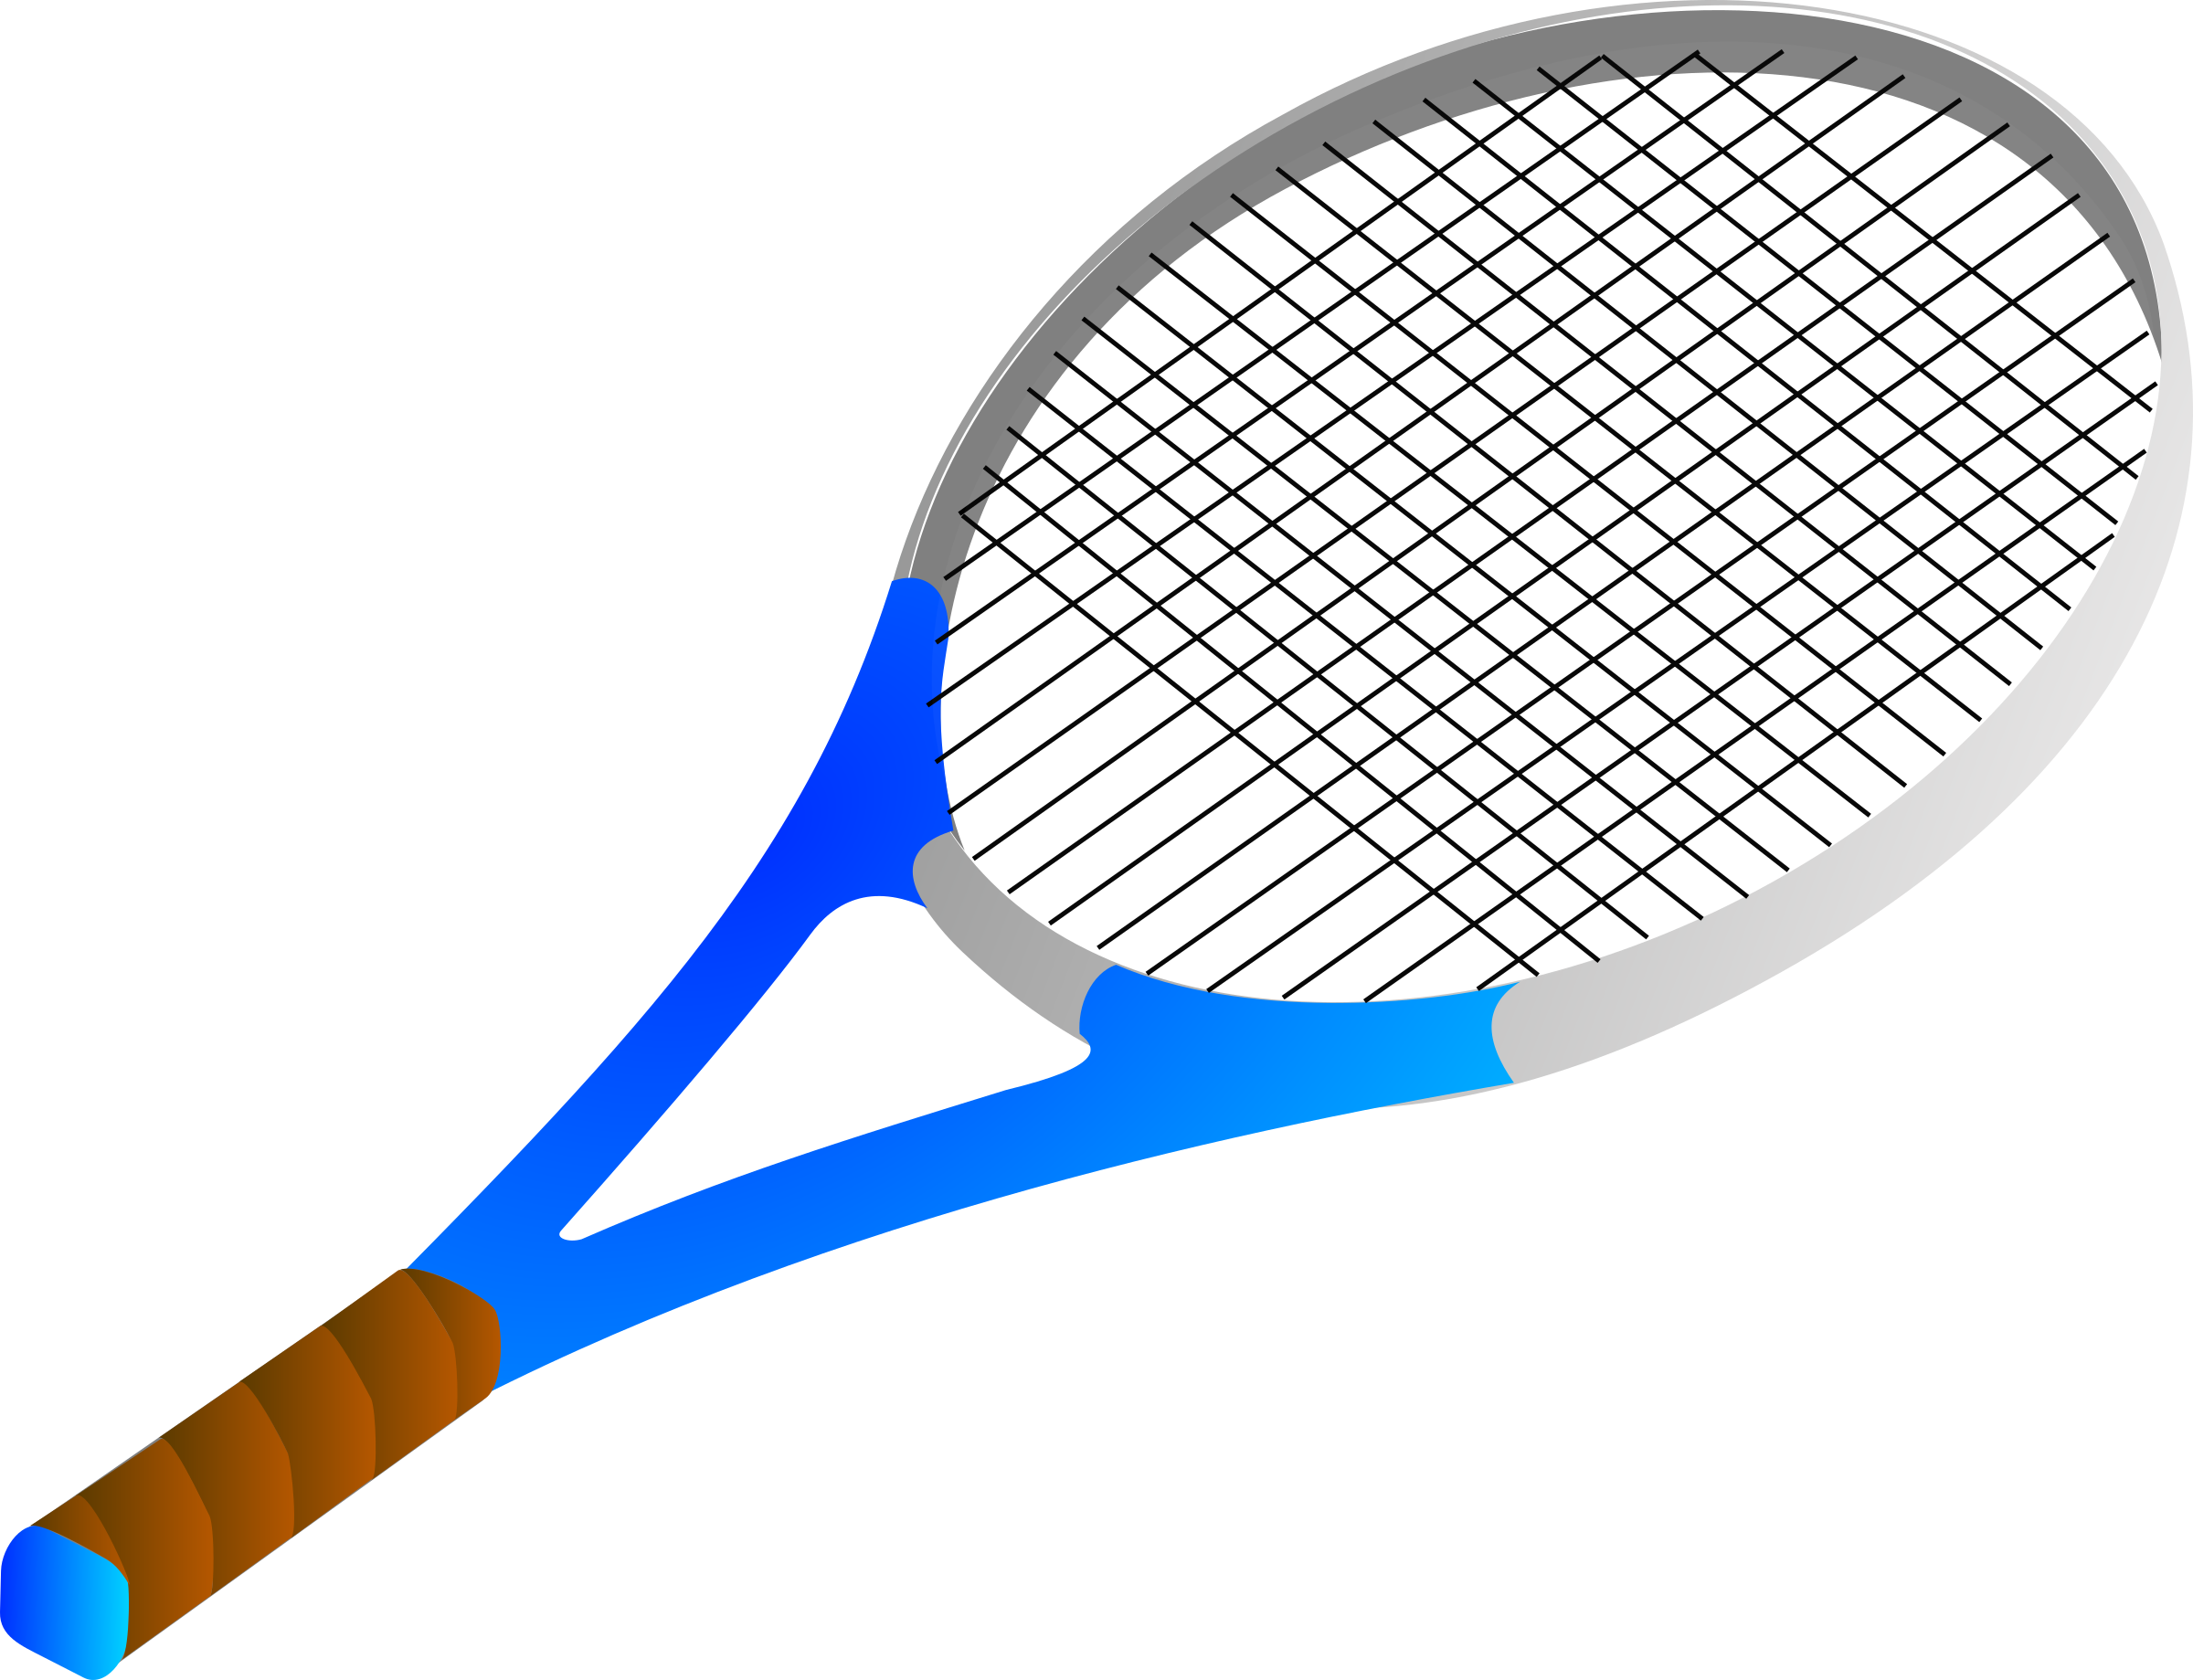 clip black and white download Racquetball racket free on. Tennis clipart